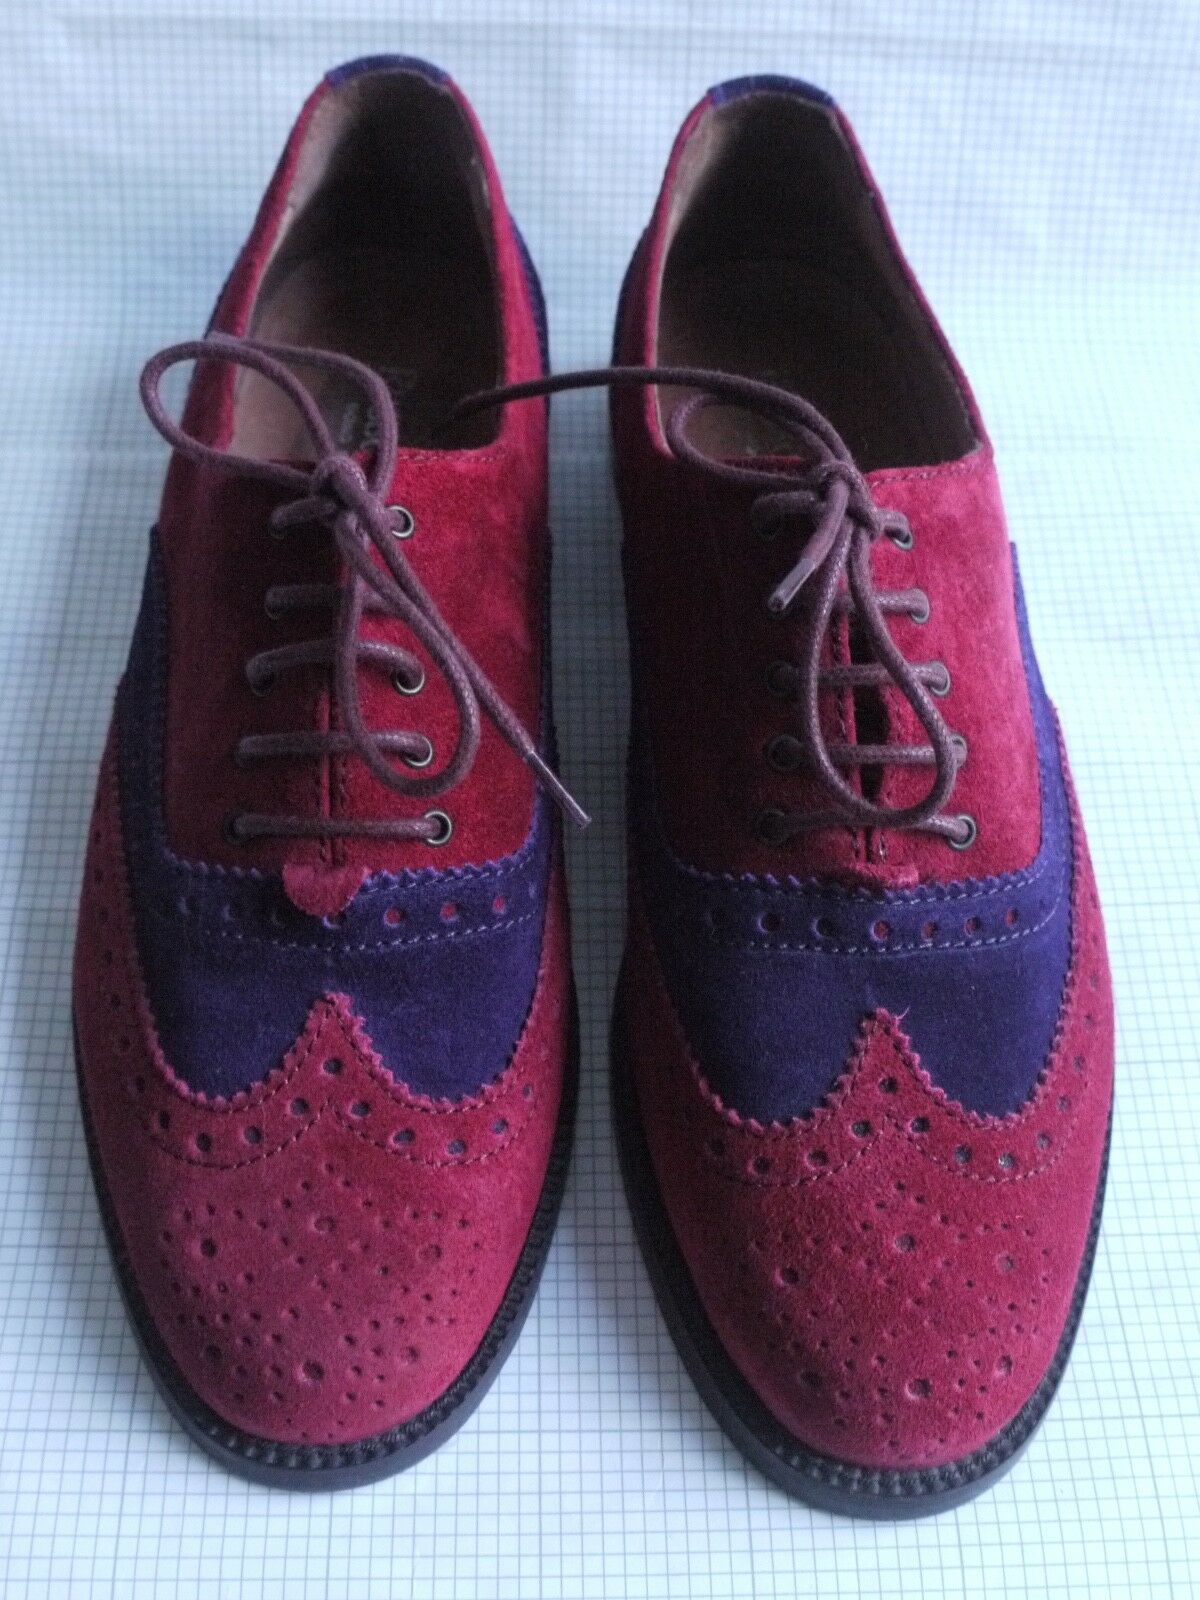 Russell & Lace-Up Bromley JEEVES ROT Viloet Suede Lace-Up & Brogue Schuhes 37.5/4.5 4fe13d